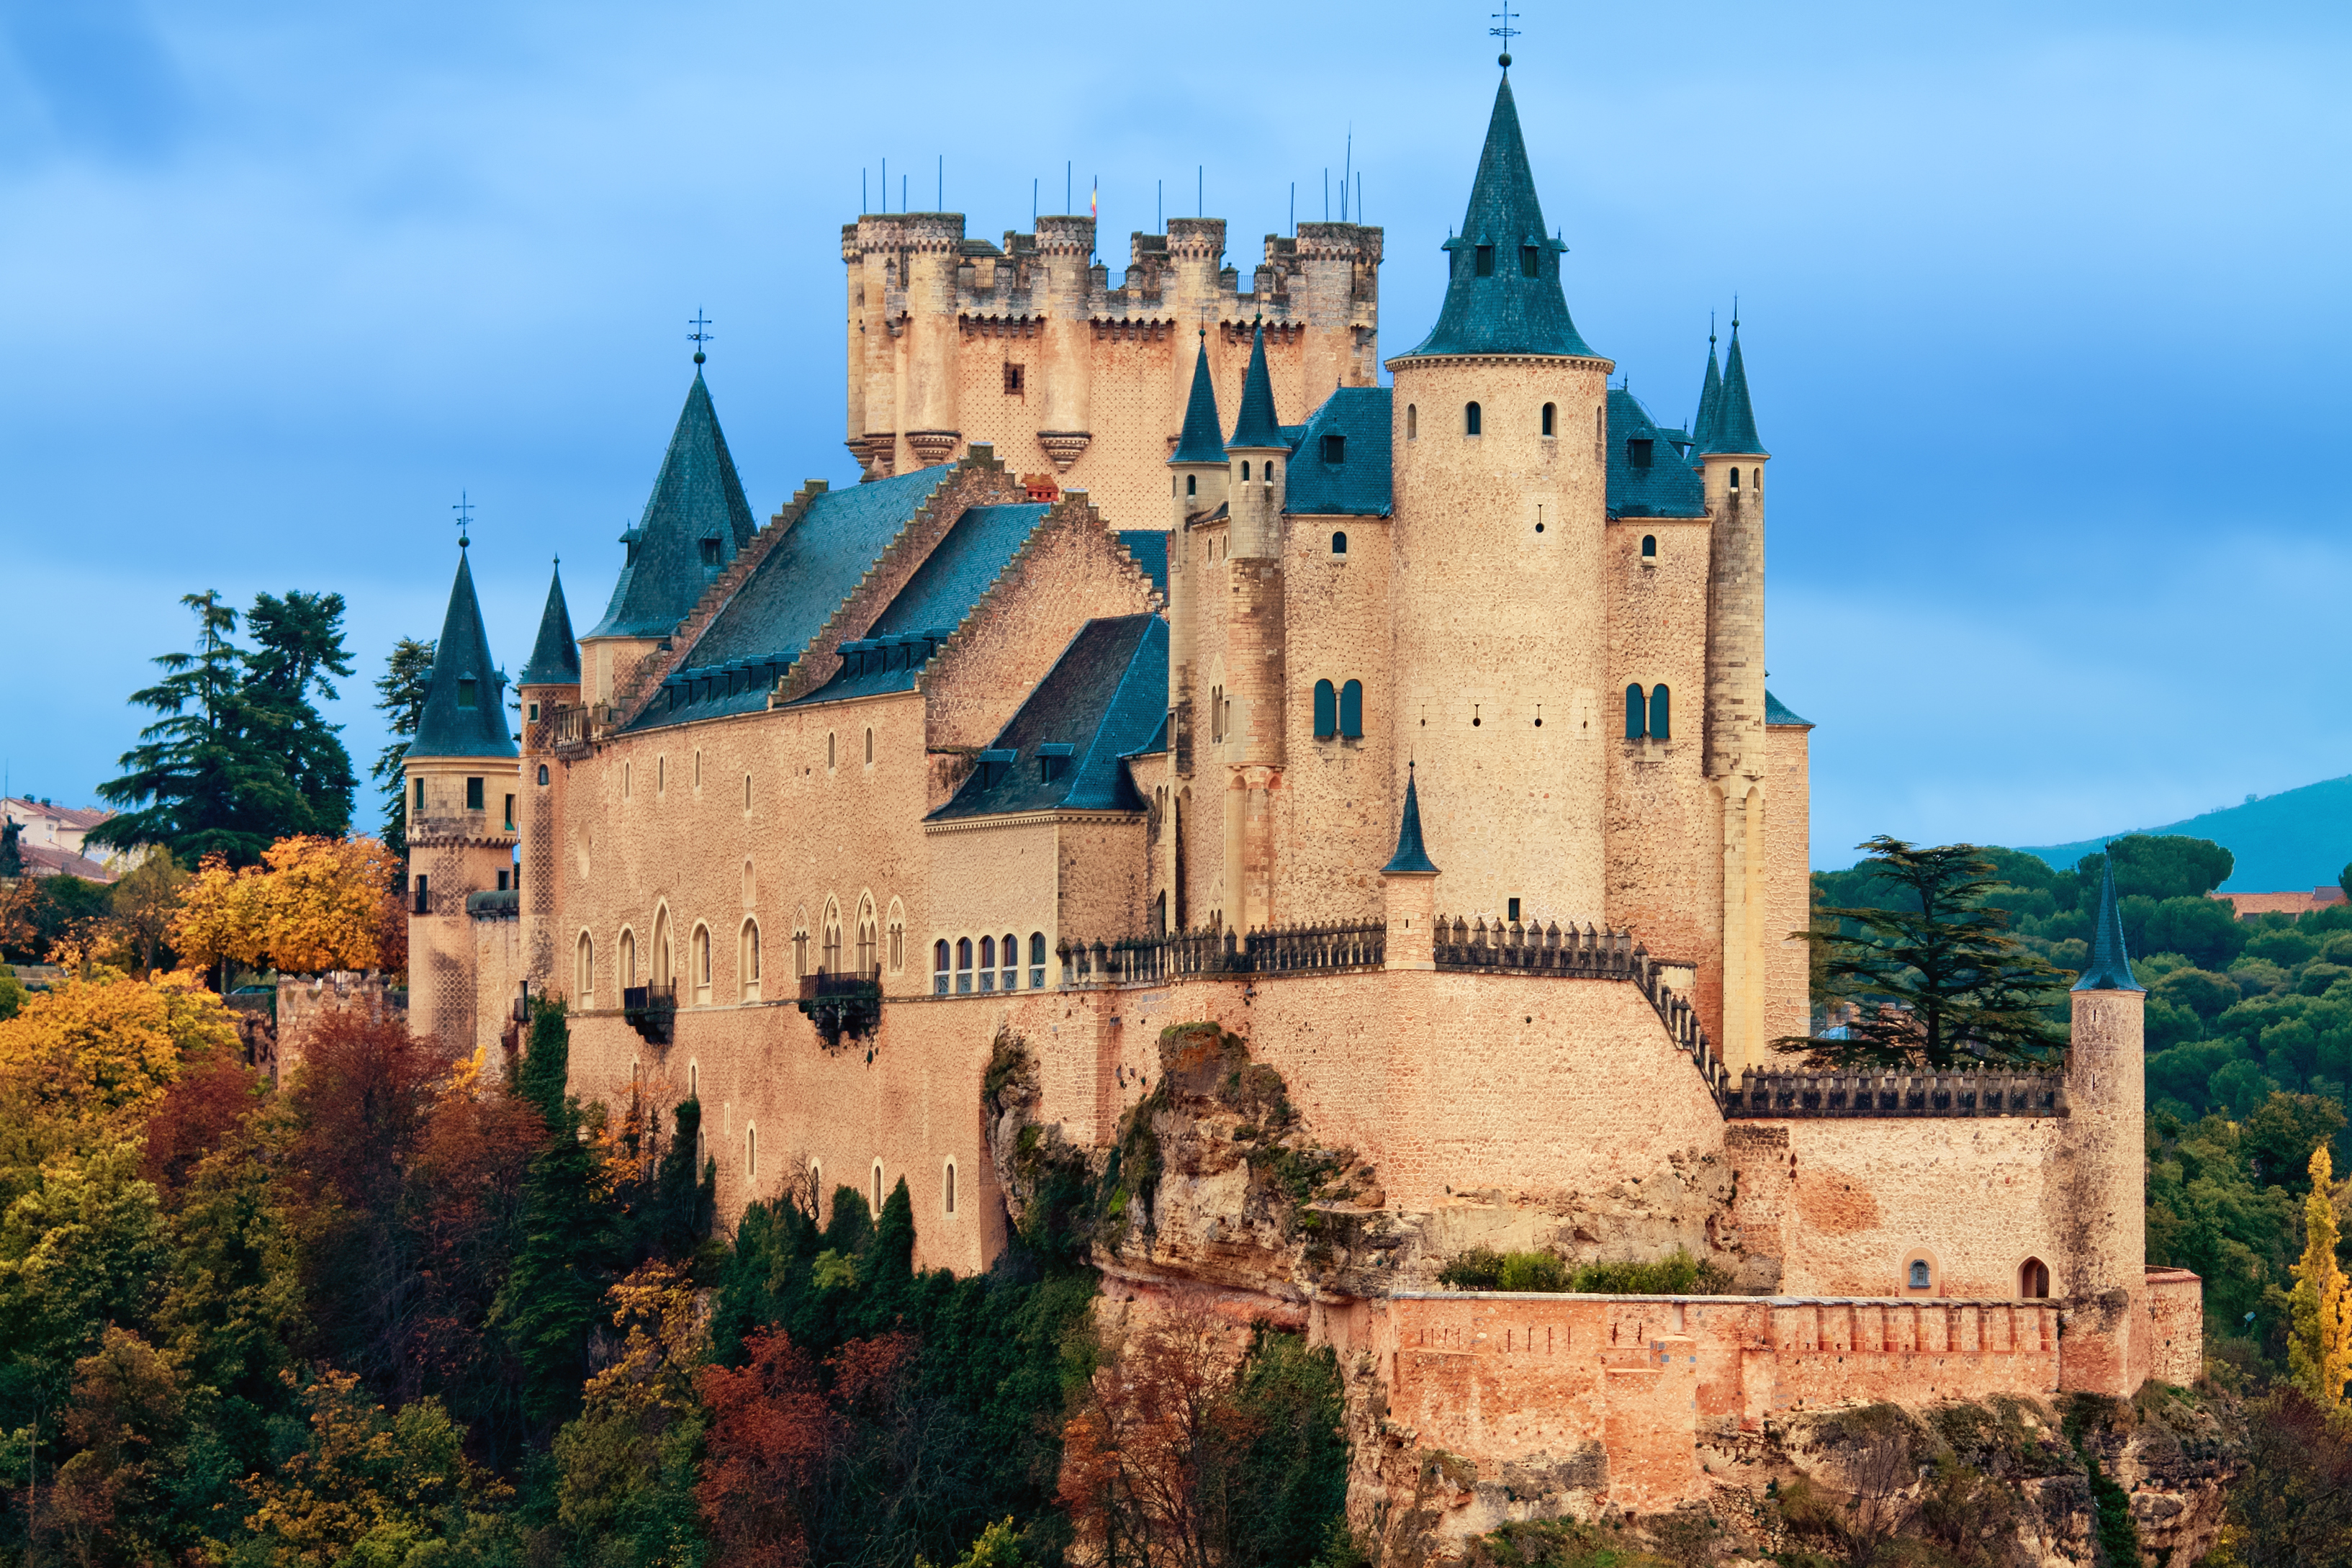 most impressive castles Alcazar Castle in Segovia, Spain